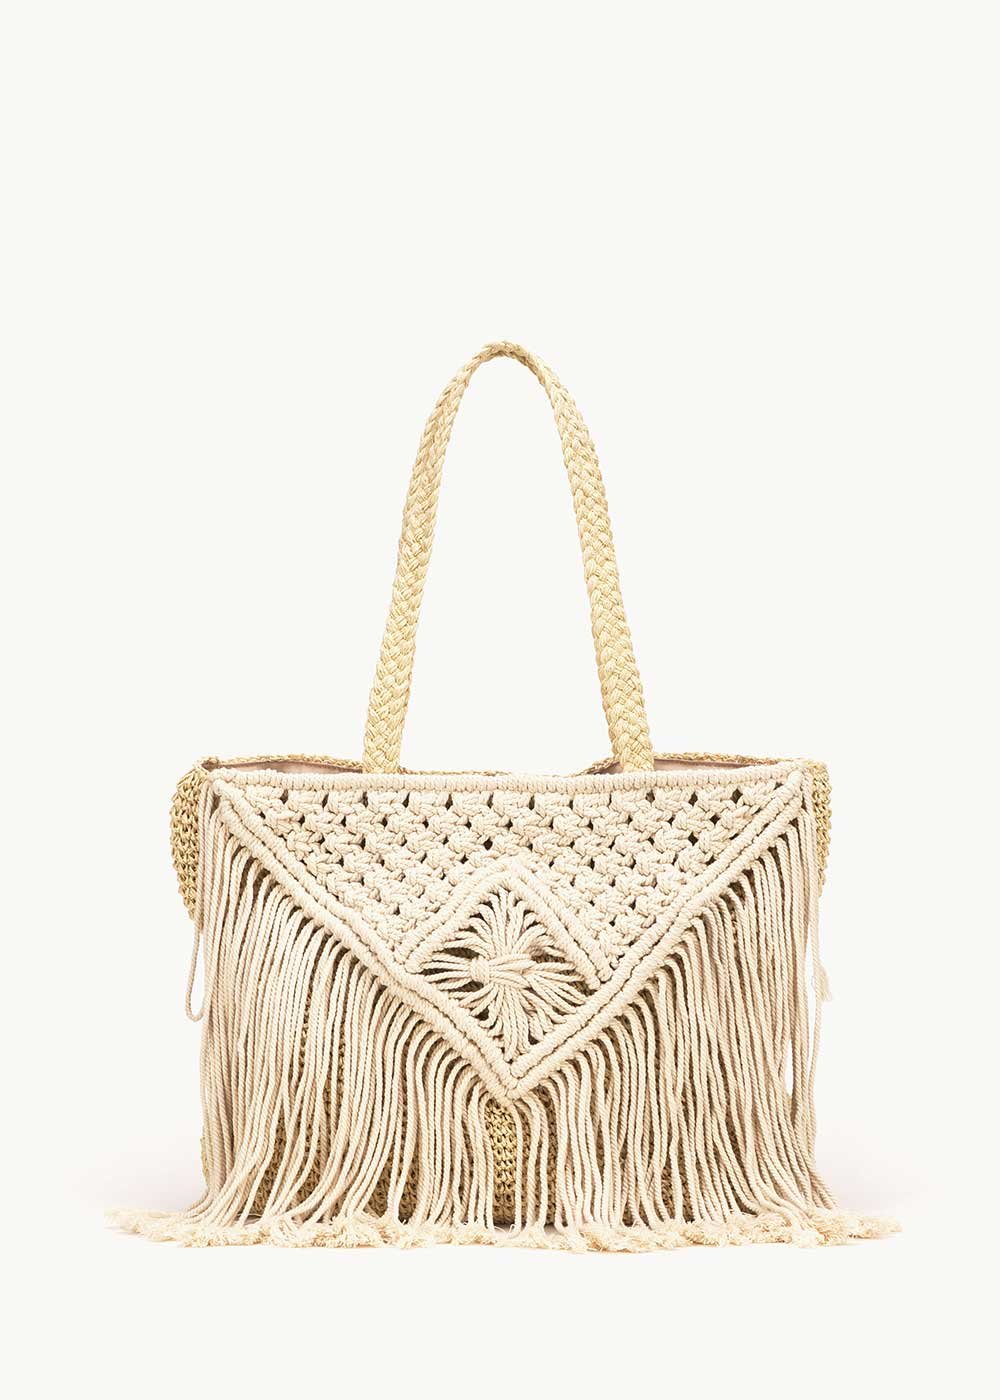 Bardy shopping bag with fringes - Light Beige - Woman